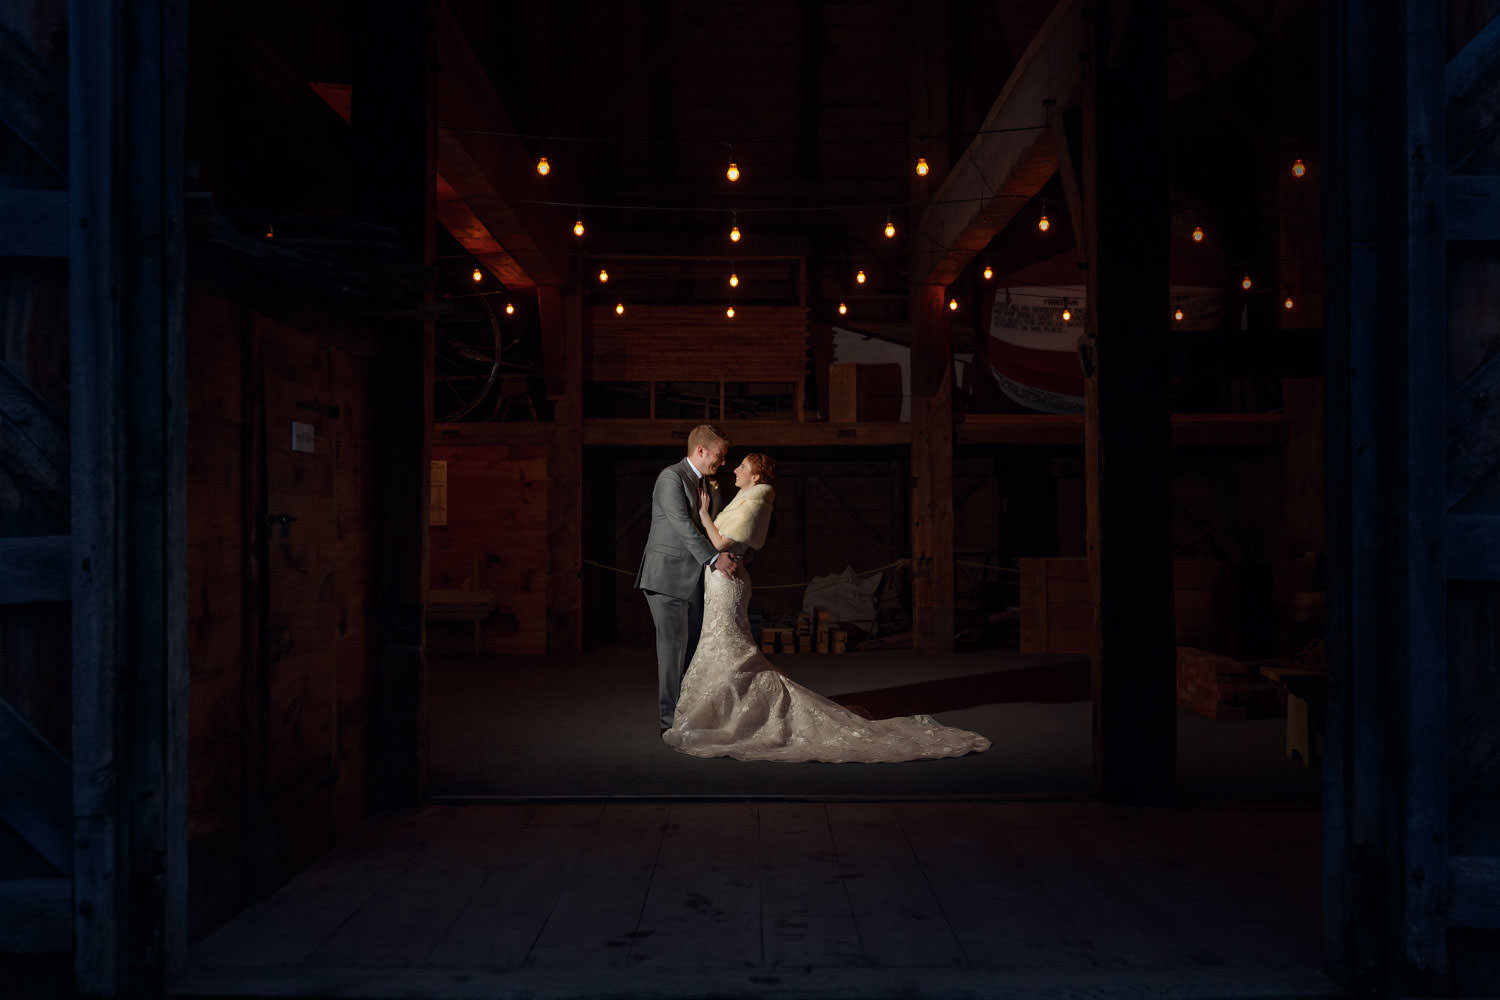 Bride and Groom at night in barn